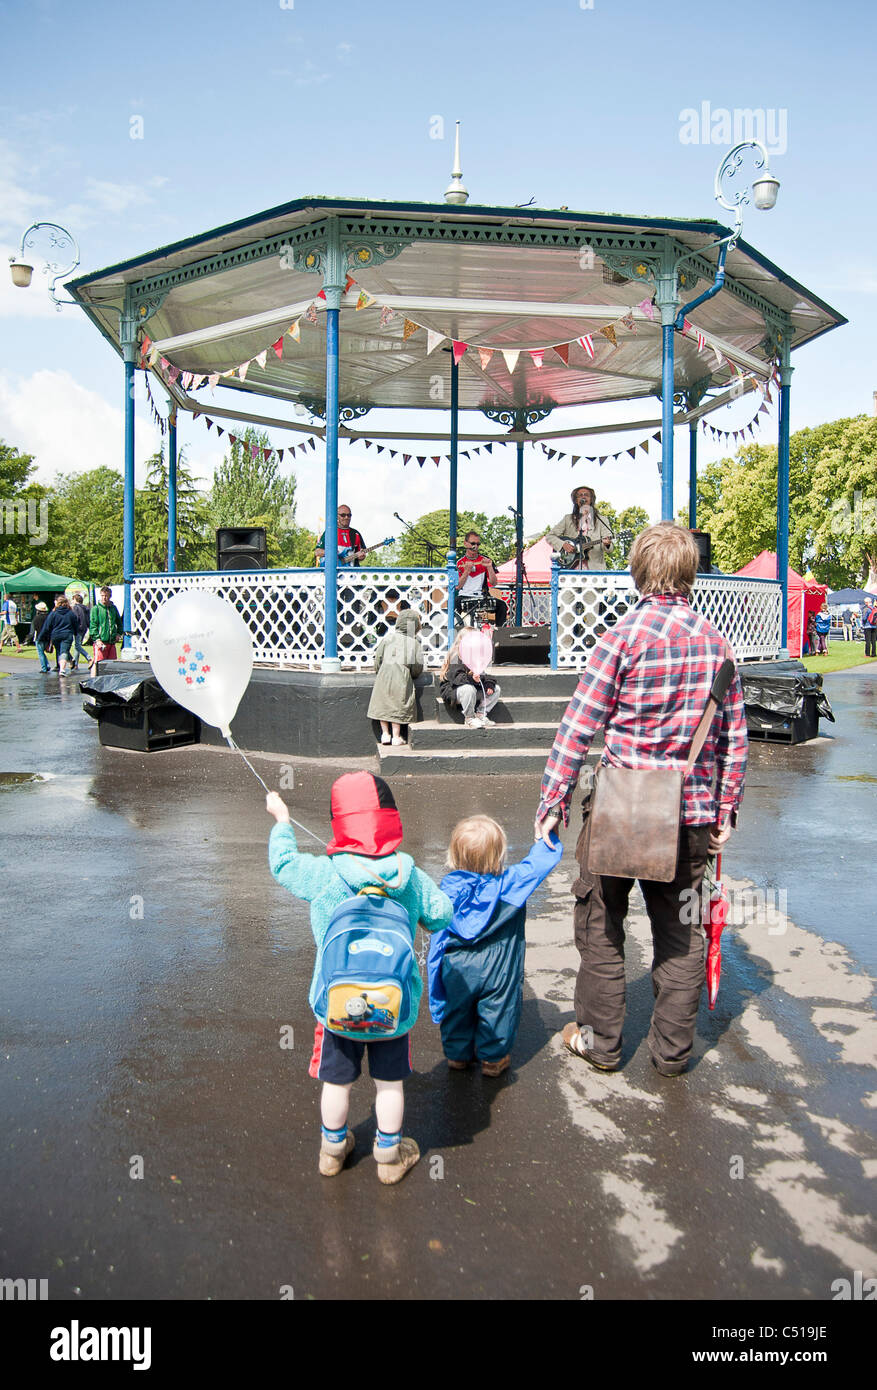 family watching musicians on a bandstand - Stock Image